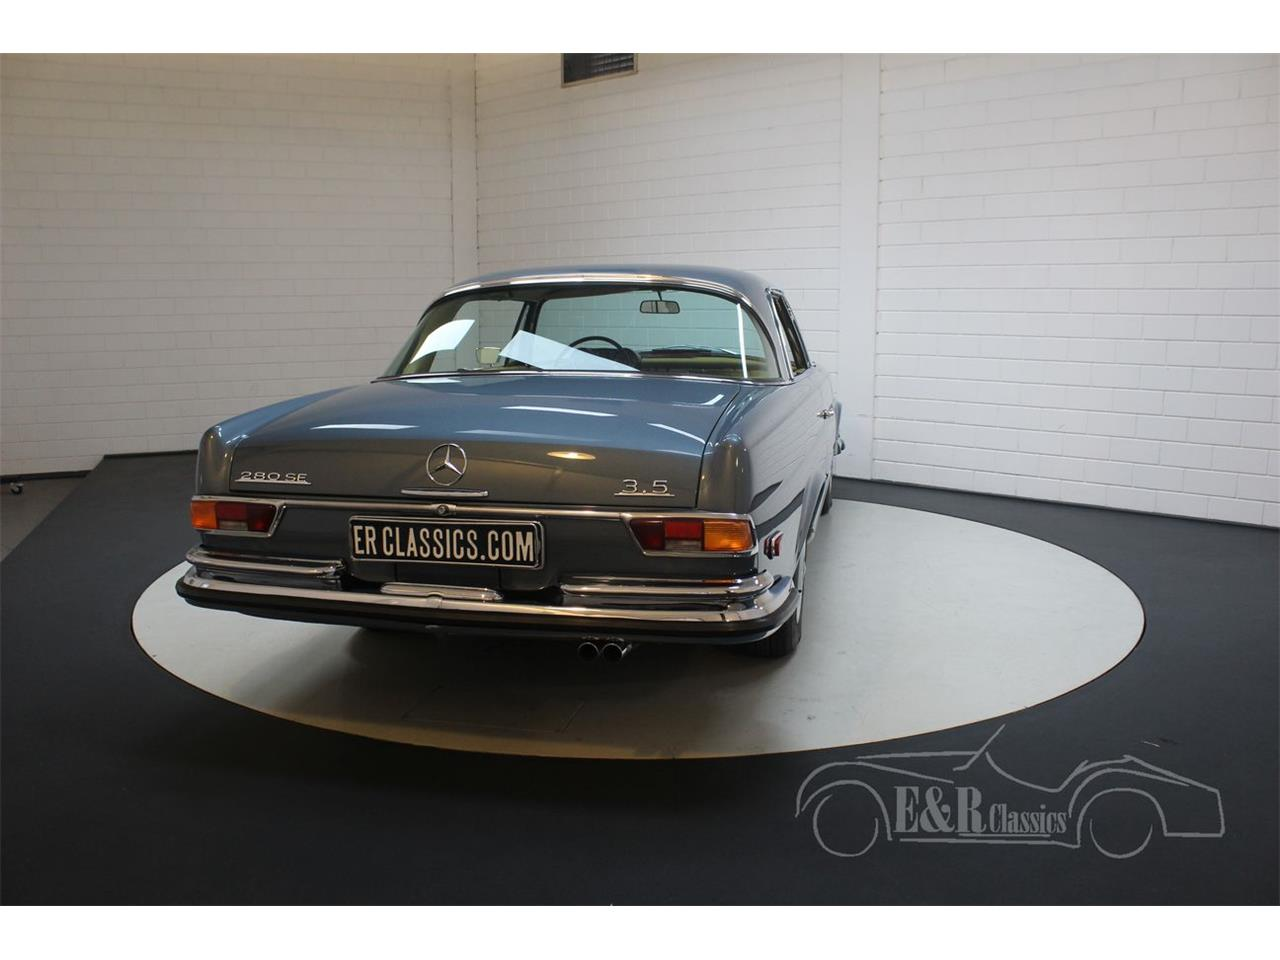 Large Picture of 1971 Mercedes-Benz 280SE located in Noord-Brabant - $113,800.00 - QEBY